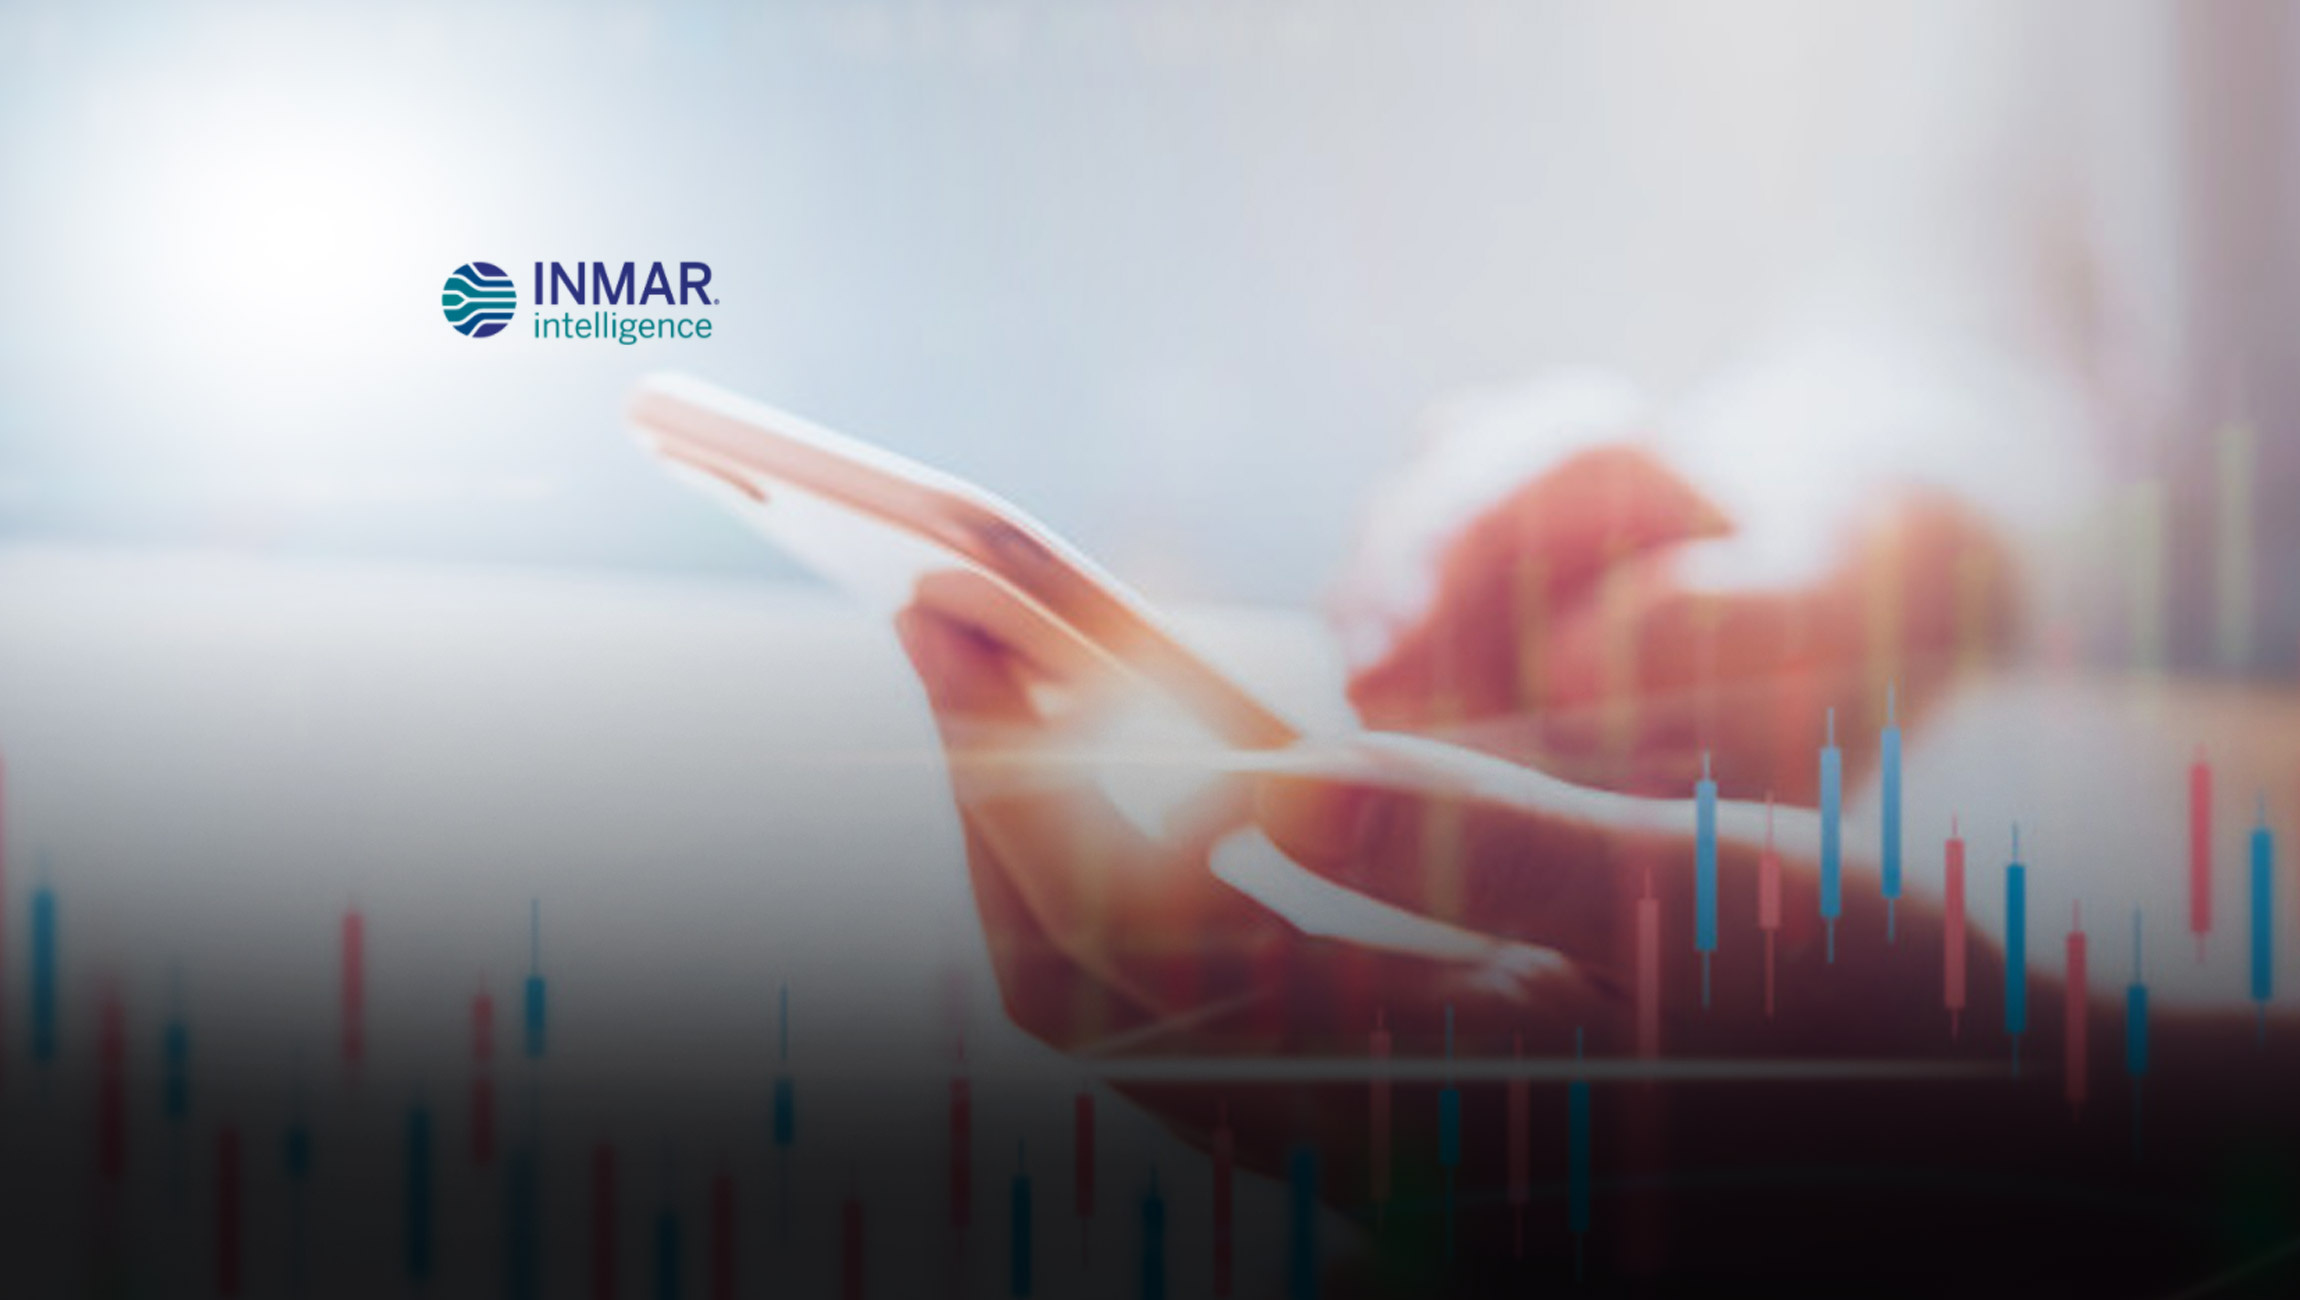 Inmar-Intelligence-Sees-Landmark-Year-with-Expanded-Partnerships_-Acquisitions_-Senior-Appointments-and-Launch-of-New-Platforms